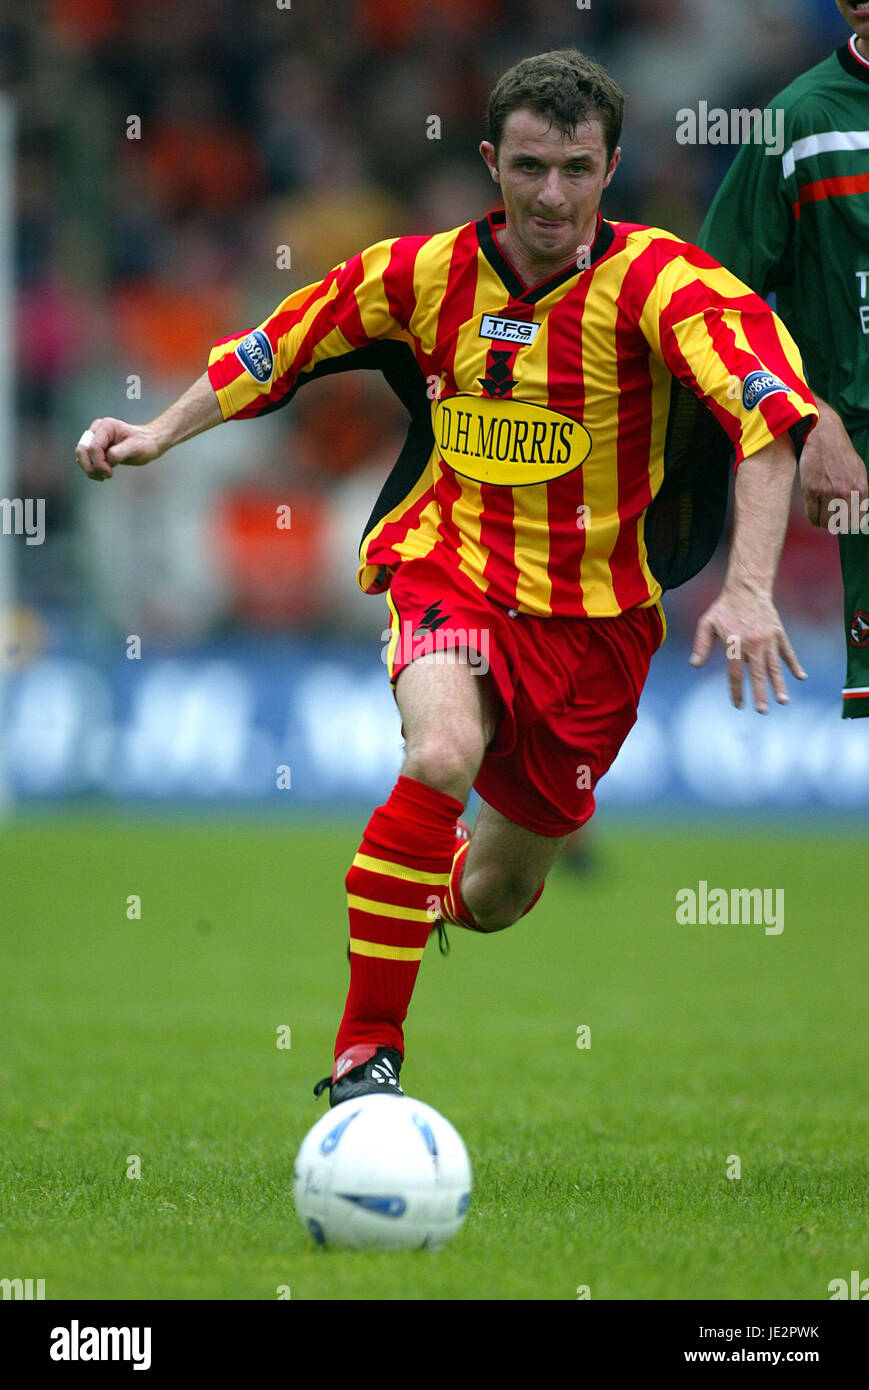 PAUL WALKER PARTICK THISTLE FC FIRHILL GLASGOW SCOTLAND 03 August 2002 - Stock Image